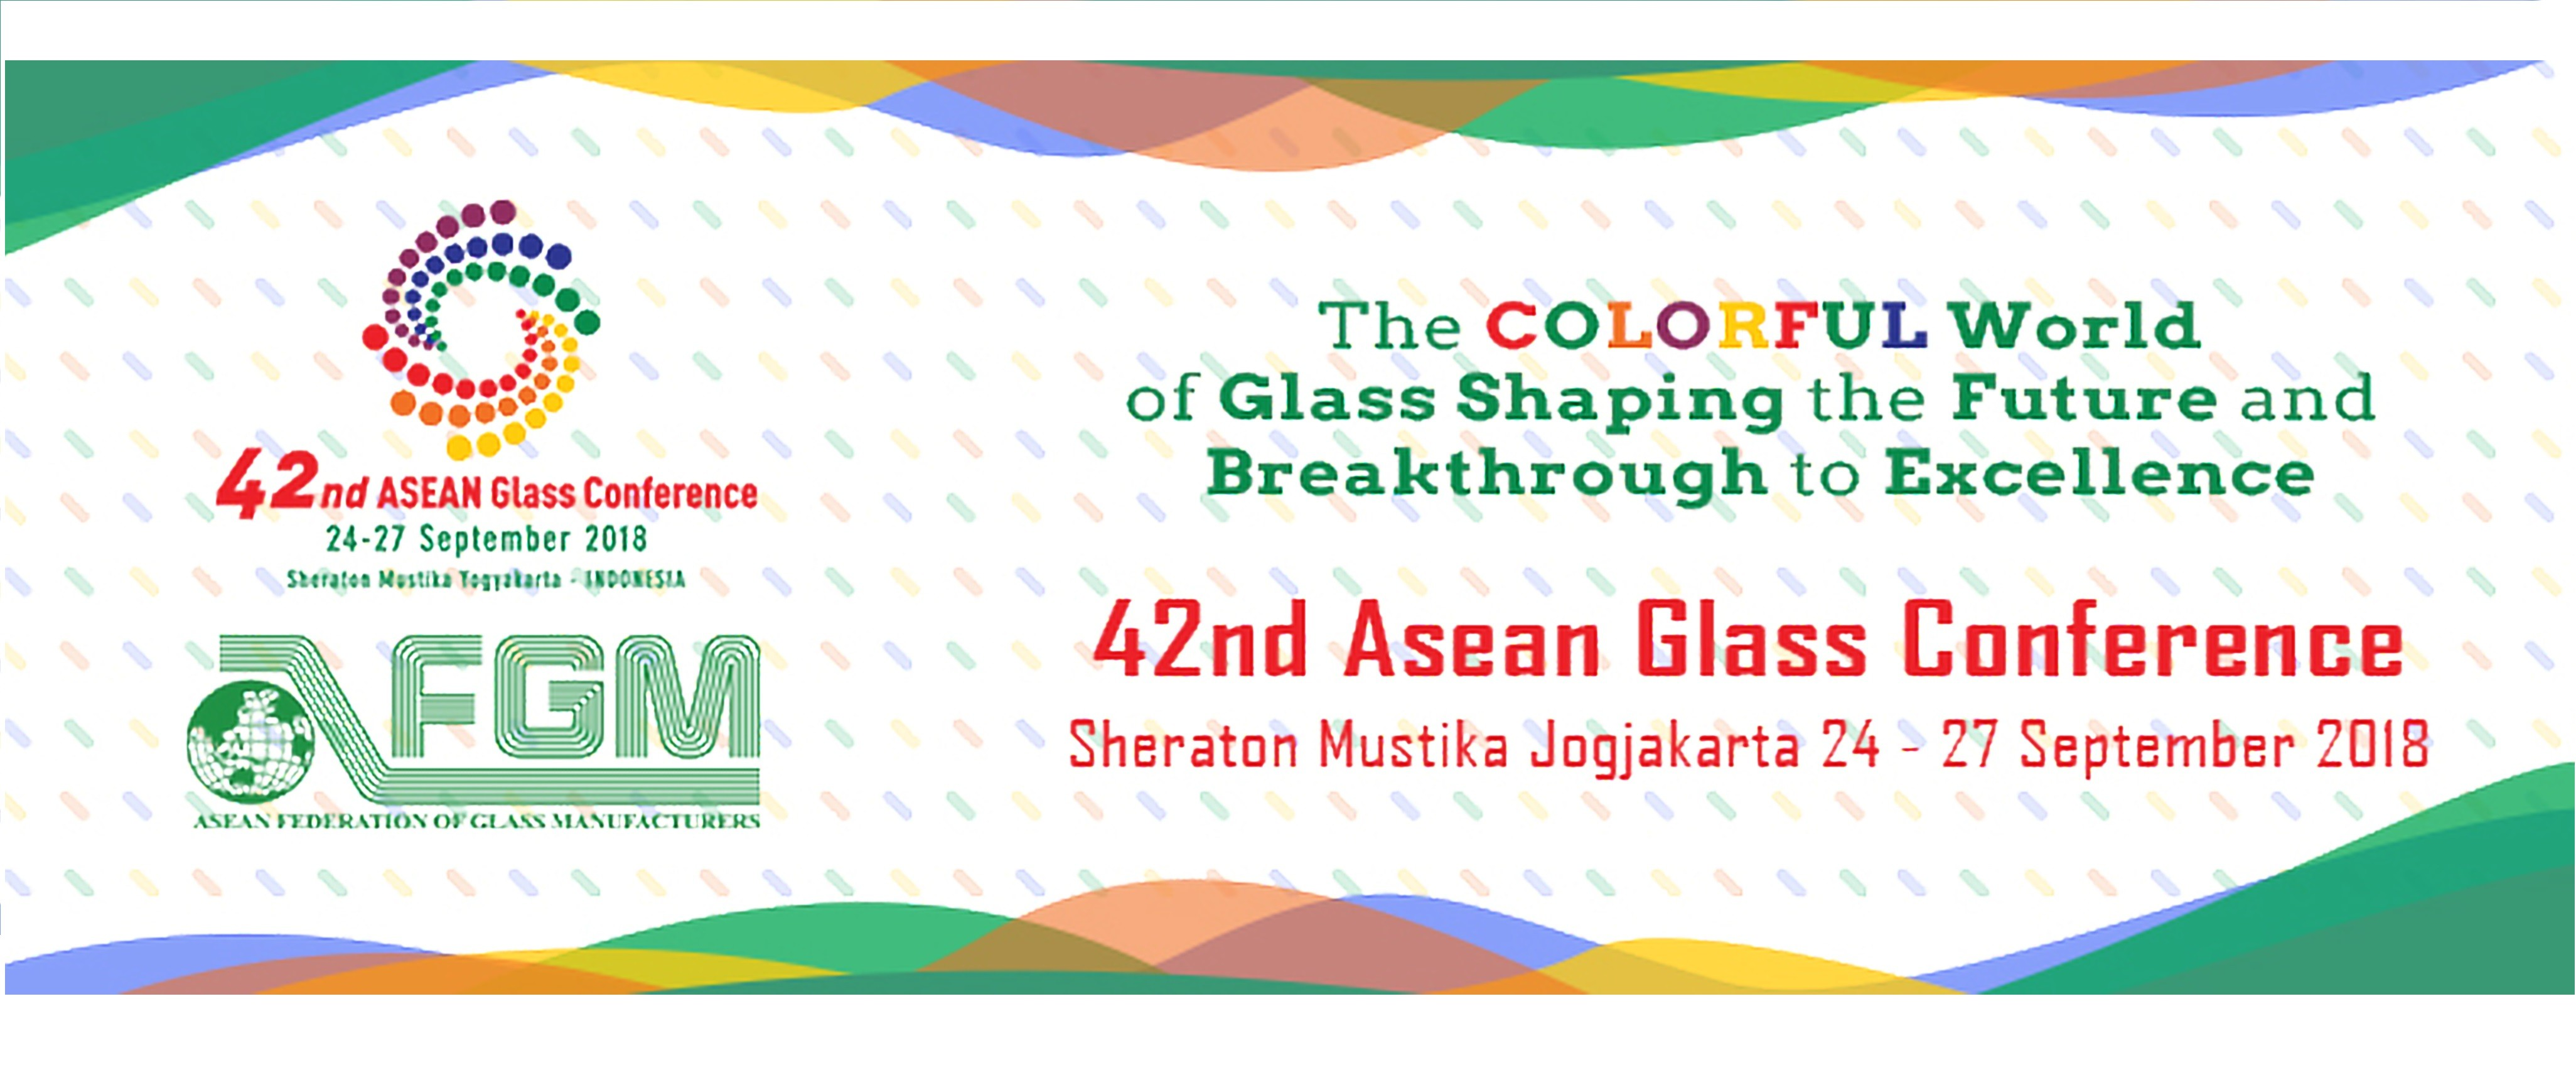 42nd ASEAN GLASS CONFERENCE